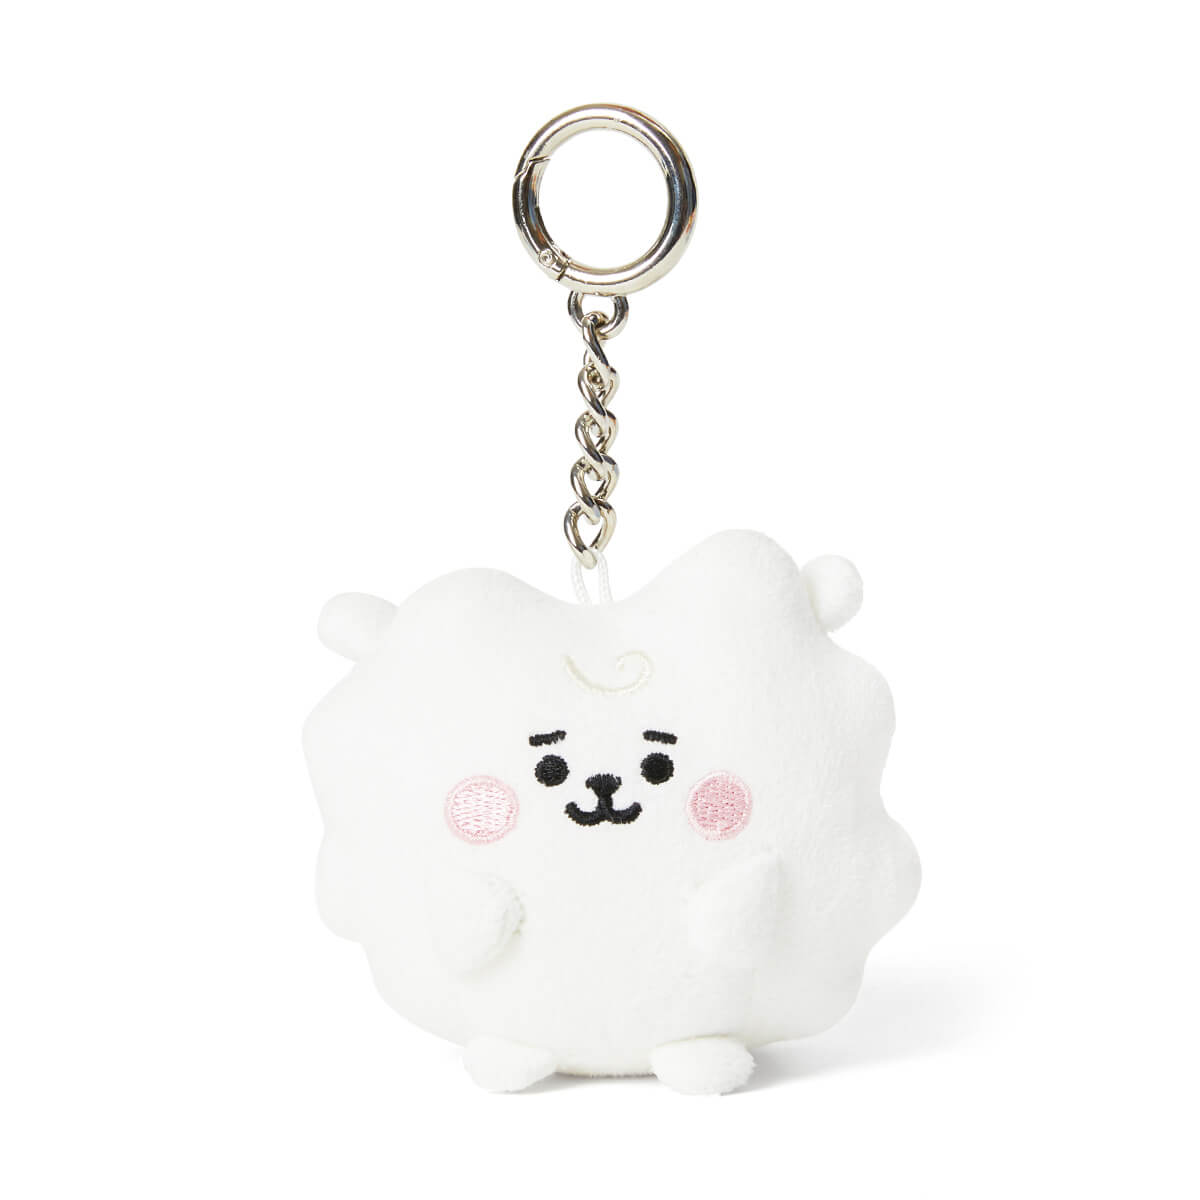 BT21 RJ BABY Pong Pong Faux Suede Bag Charm 2.7""